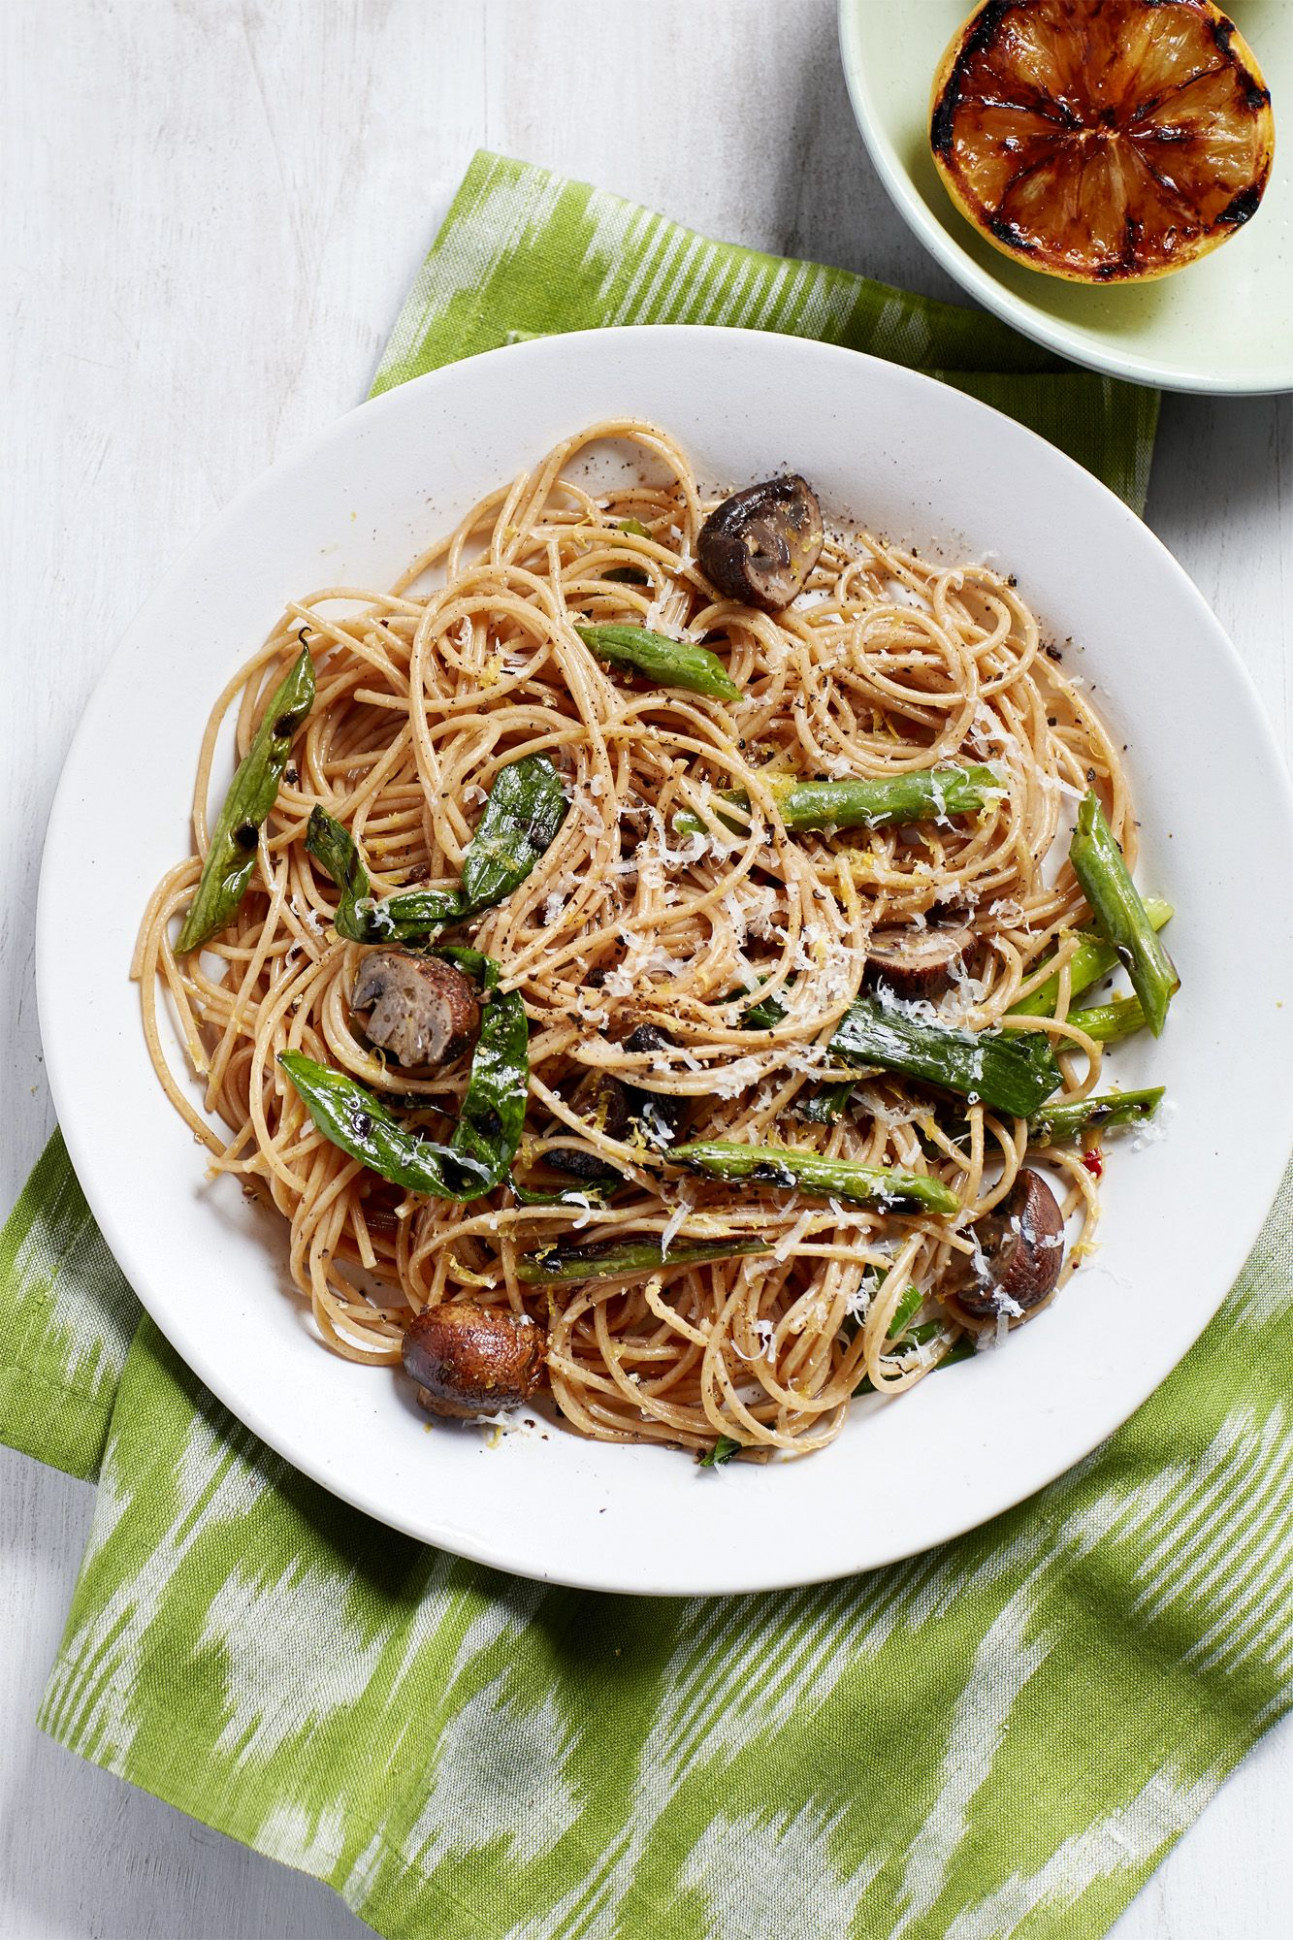 11 Best Summer Pasta Recipes - Easy Pasta Dishes for Summer